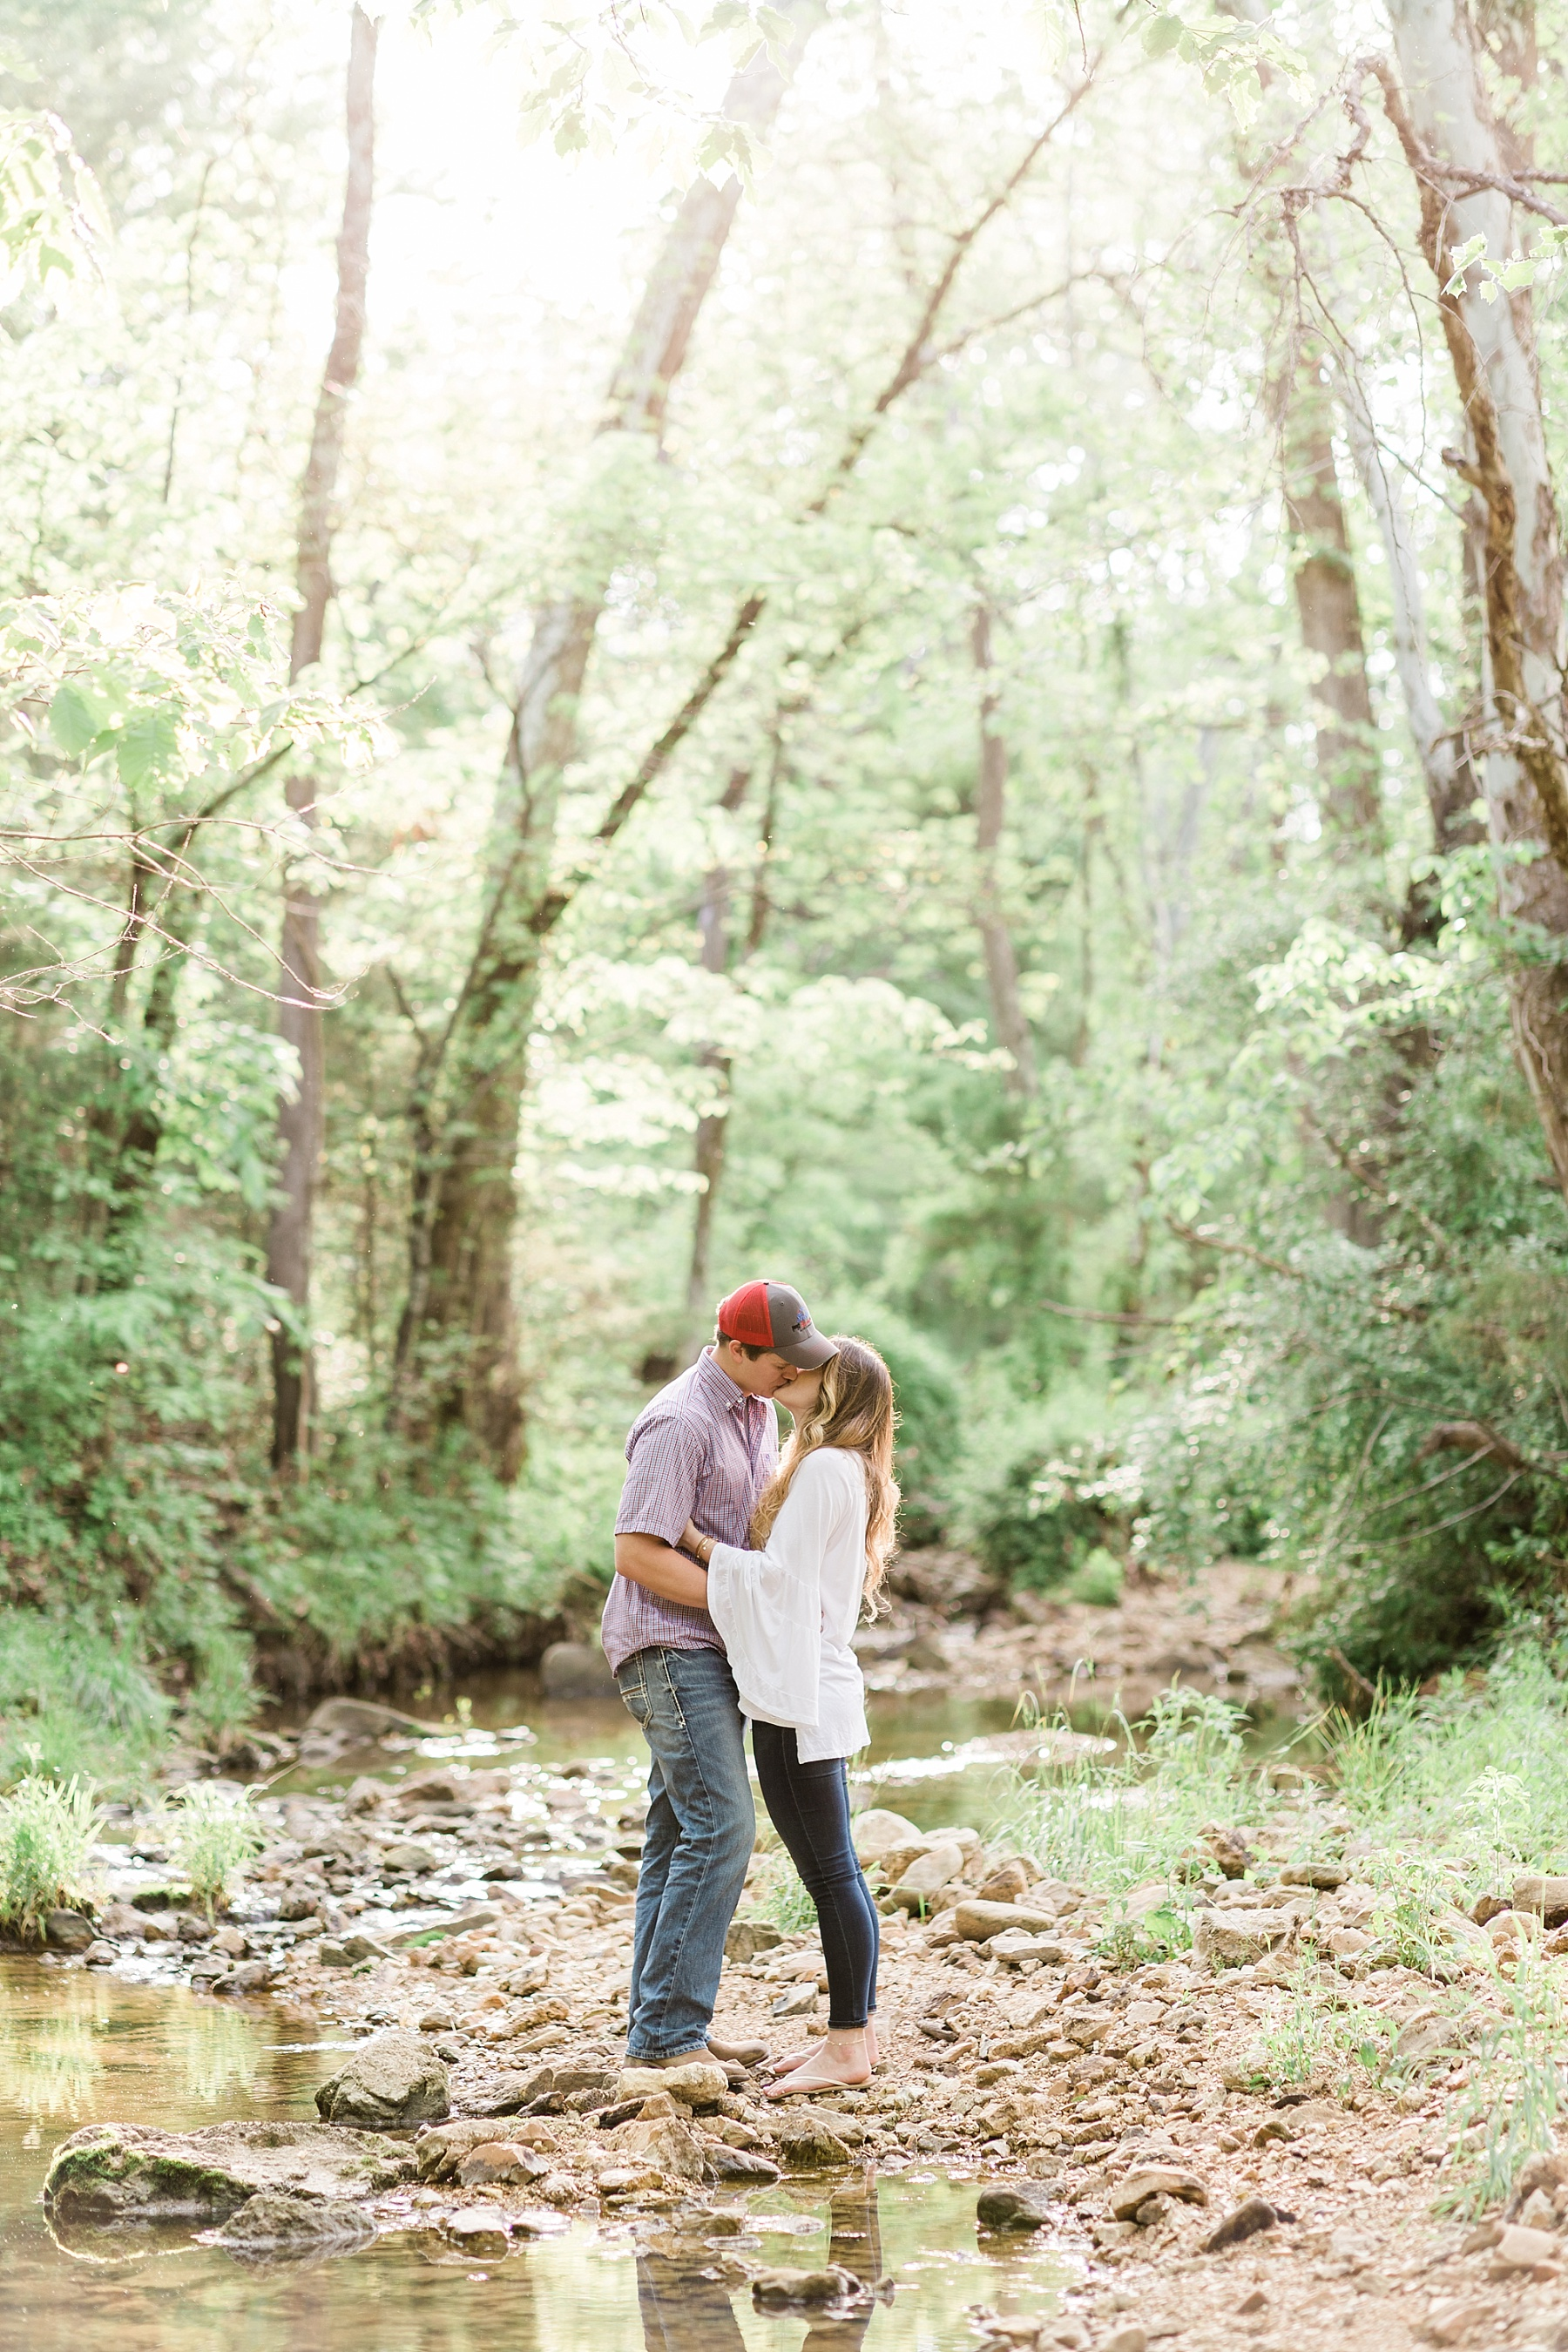 Spring Engagement Session in Open Field at Sunset by Kelsi Kliethermes Photography Best Missouri and Maui Wedding Photographer_0004.jpg